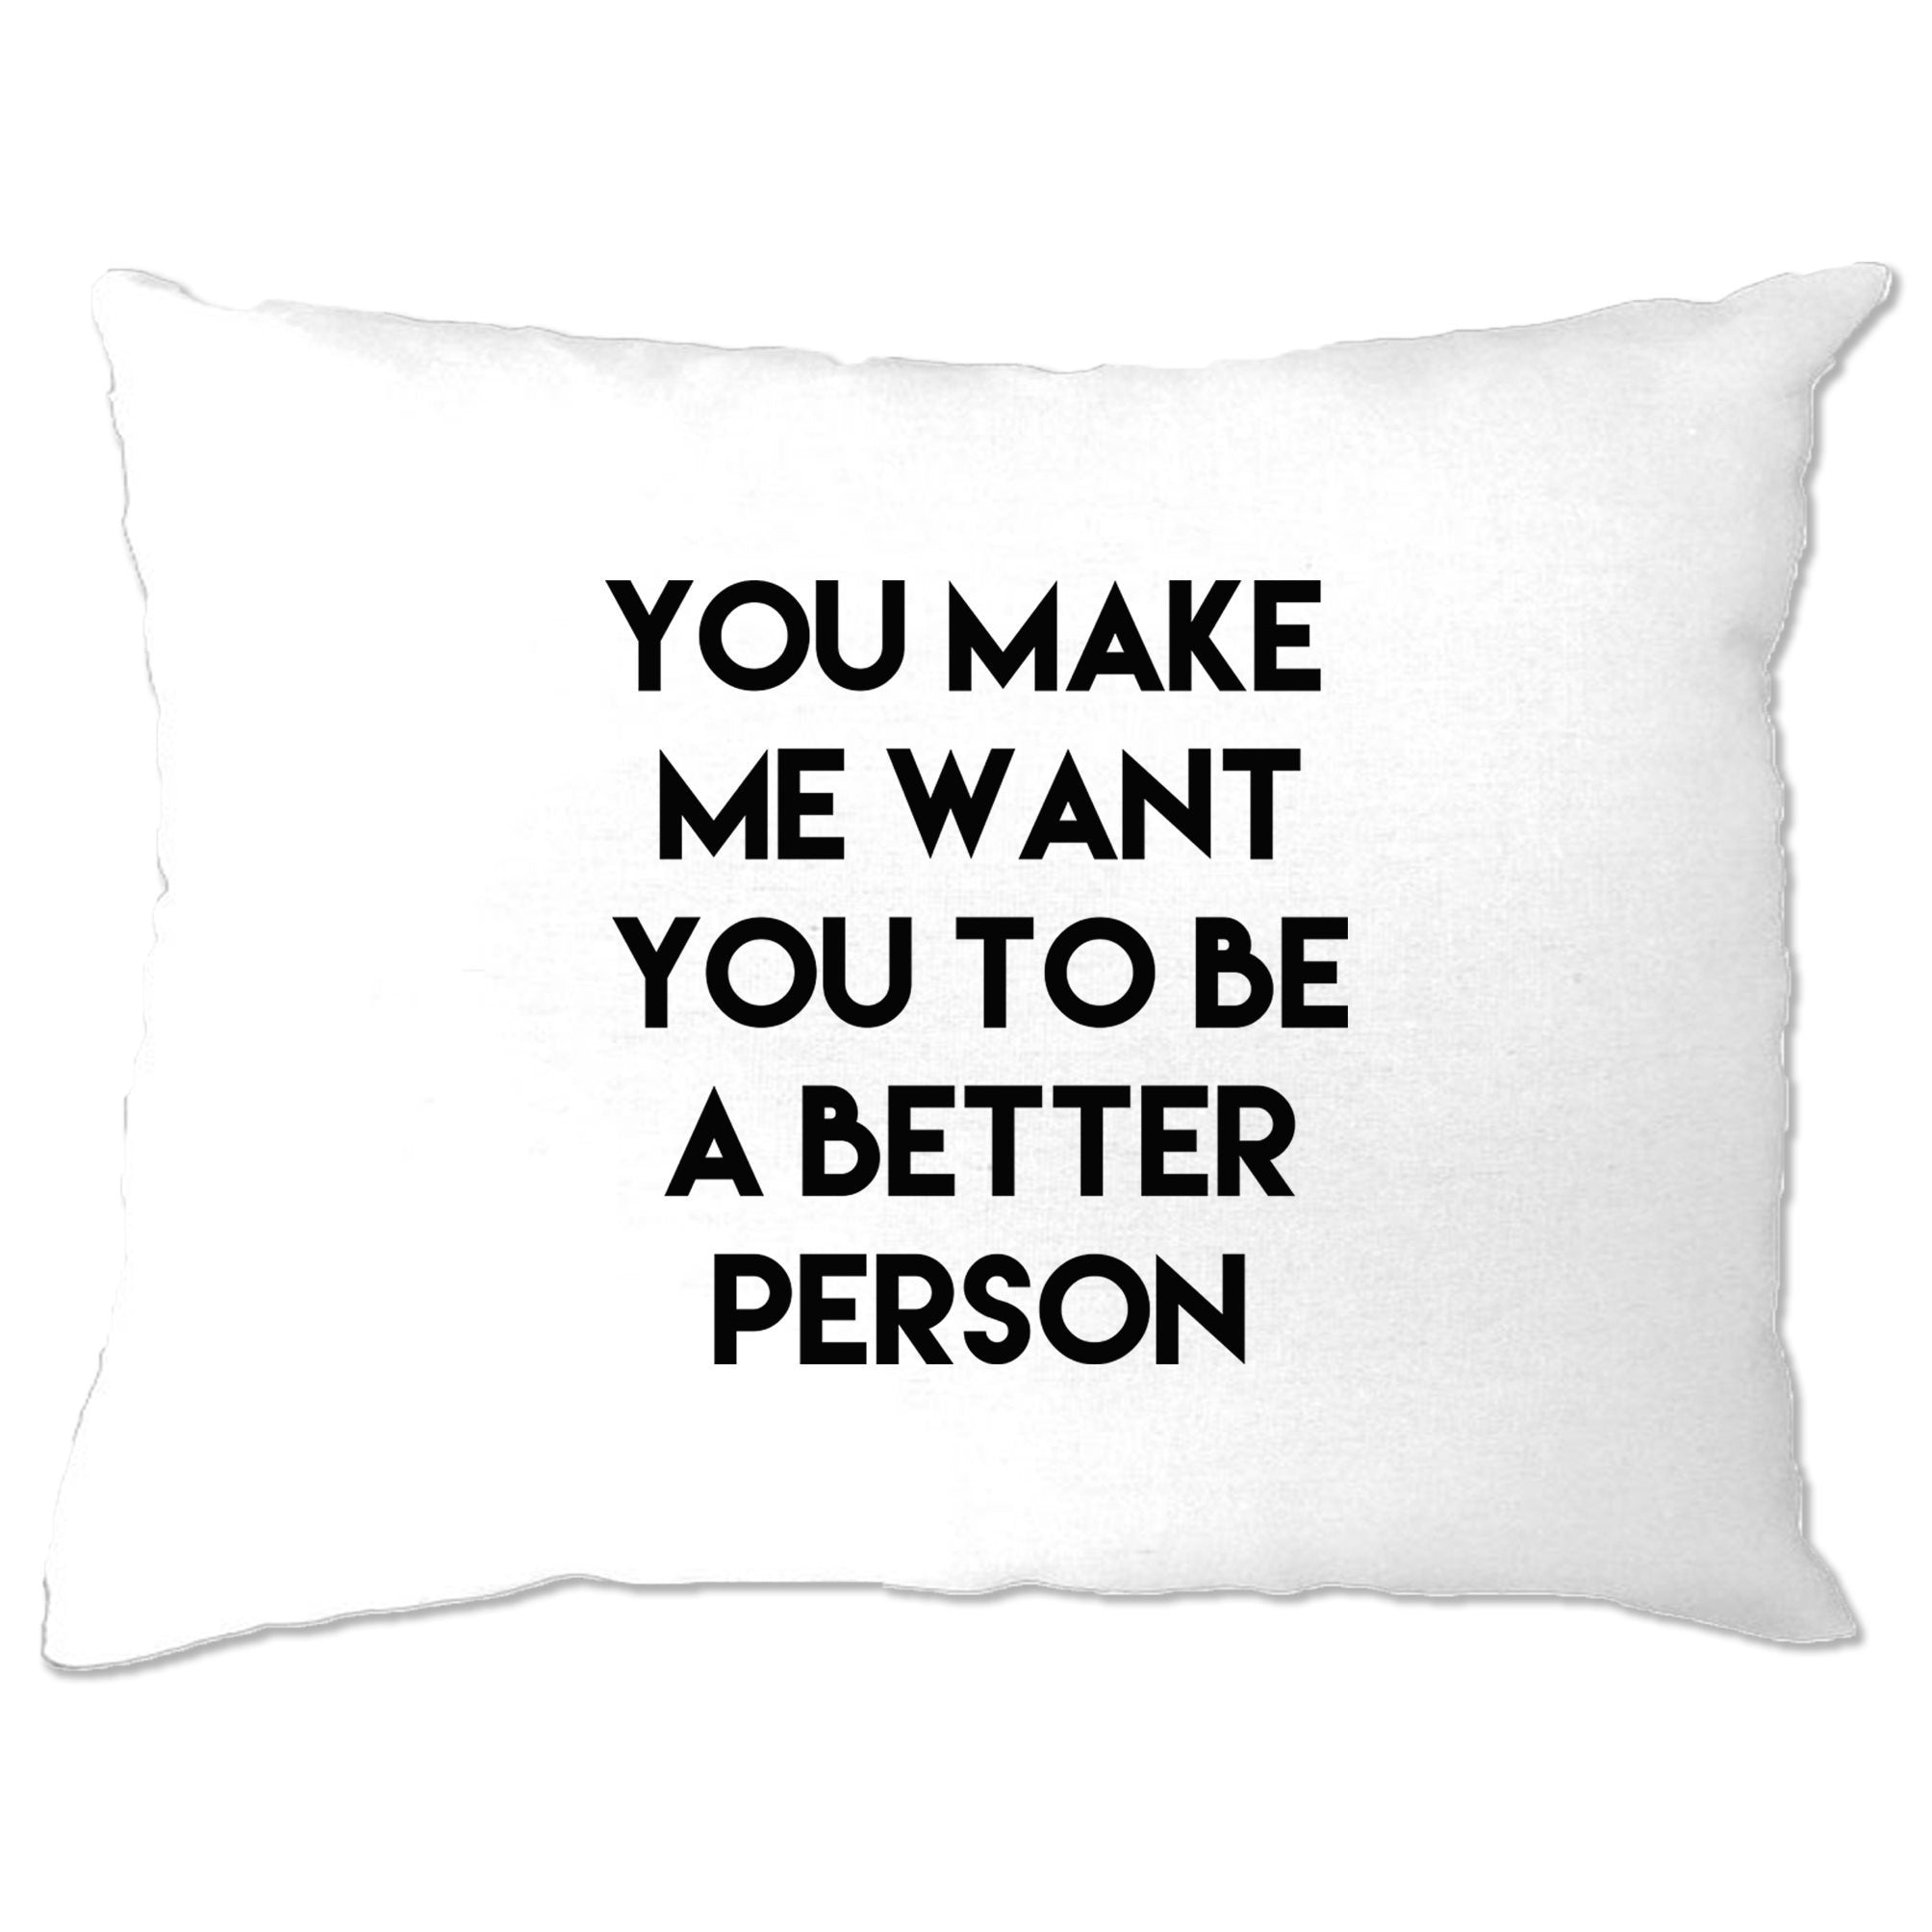 Sassy Pillow Case You Make Me Want You To Be Better Person